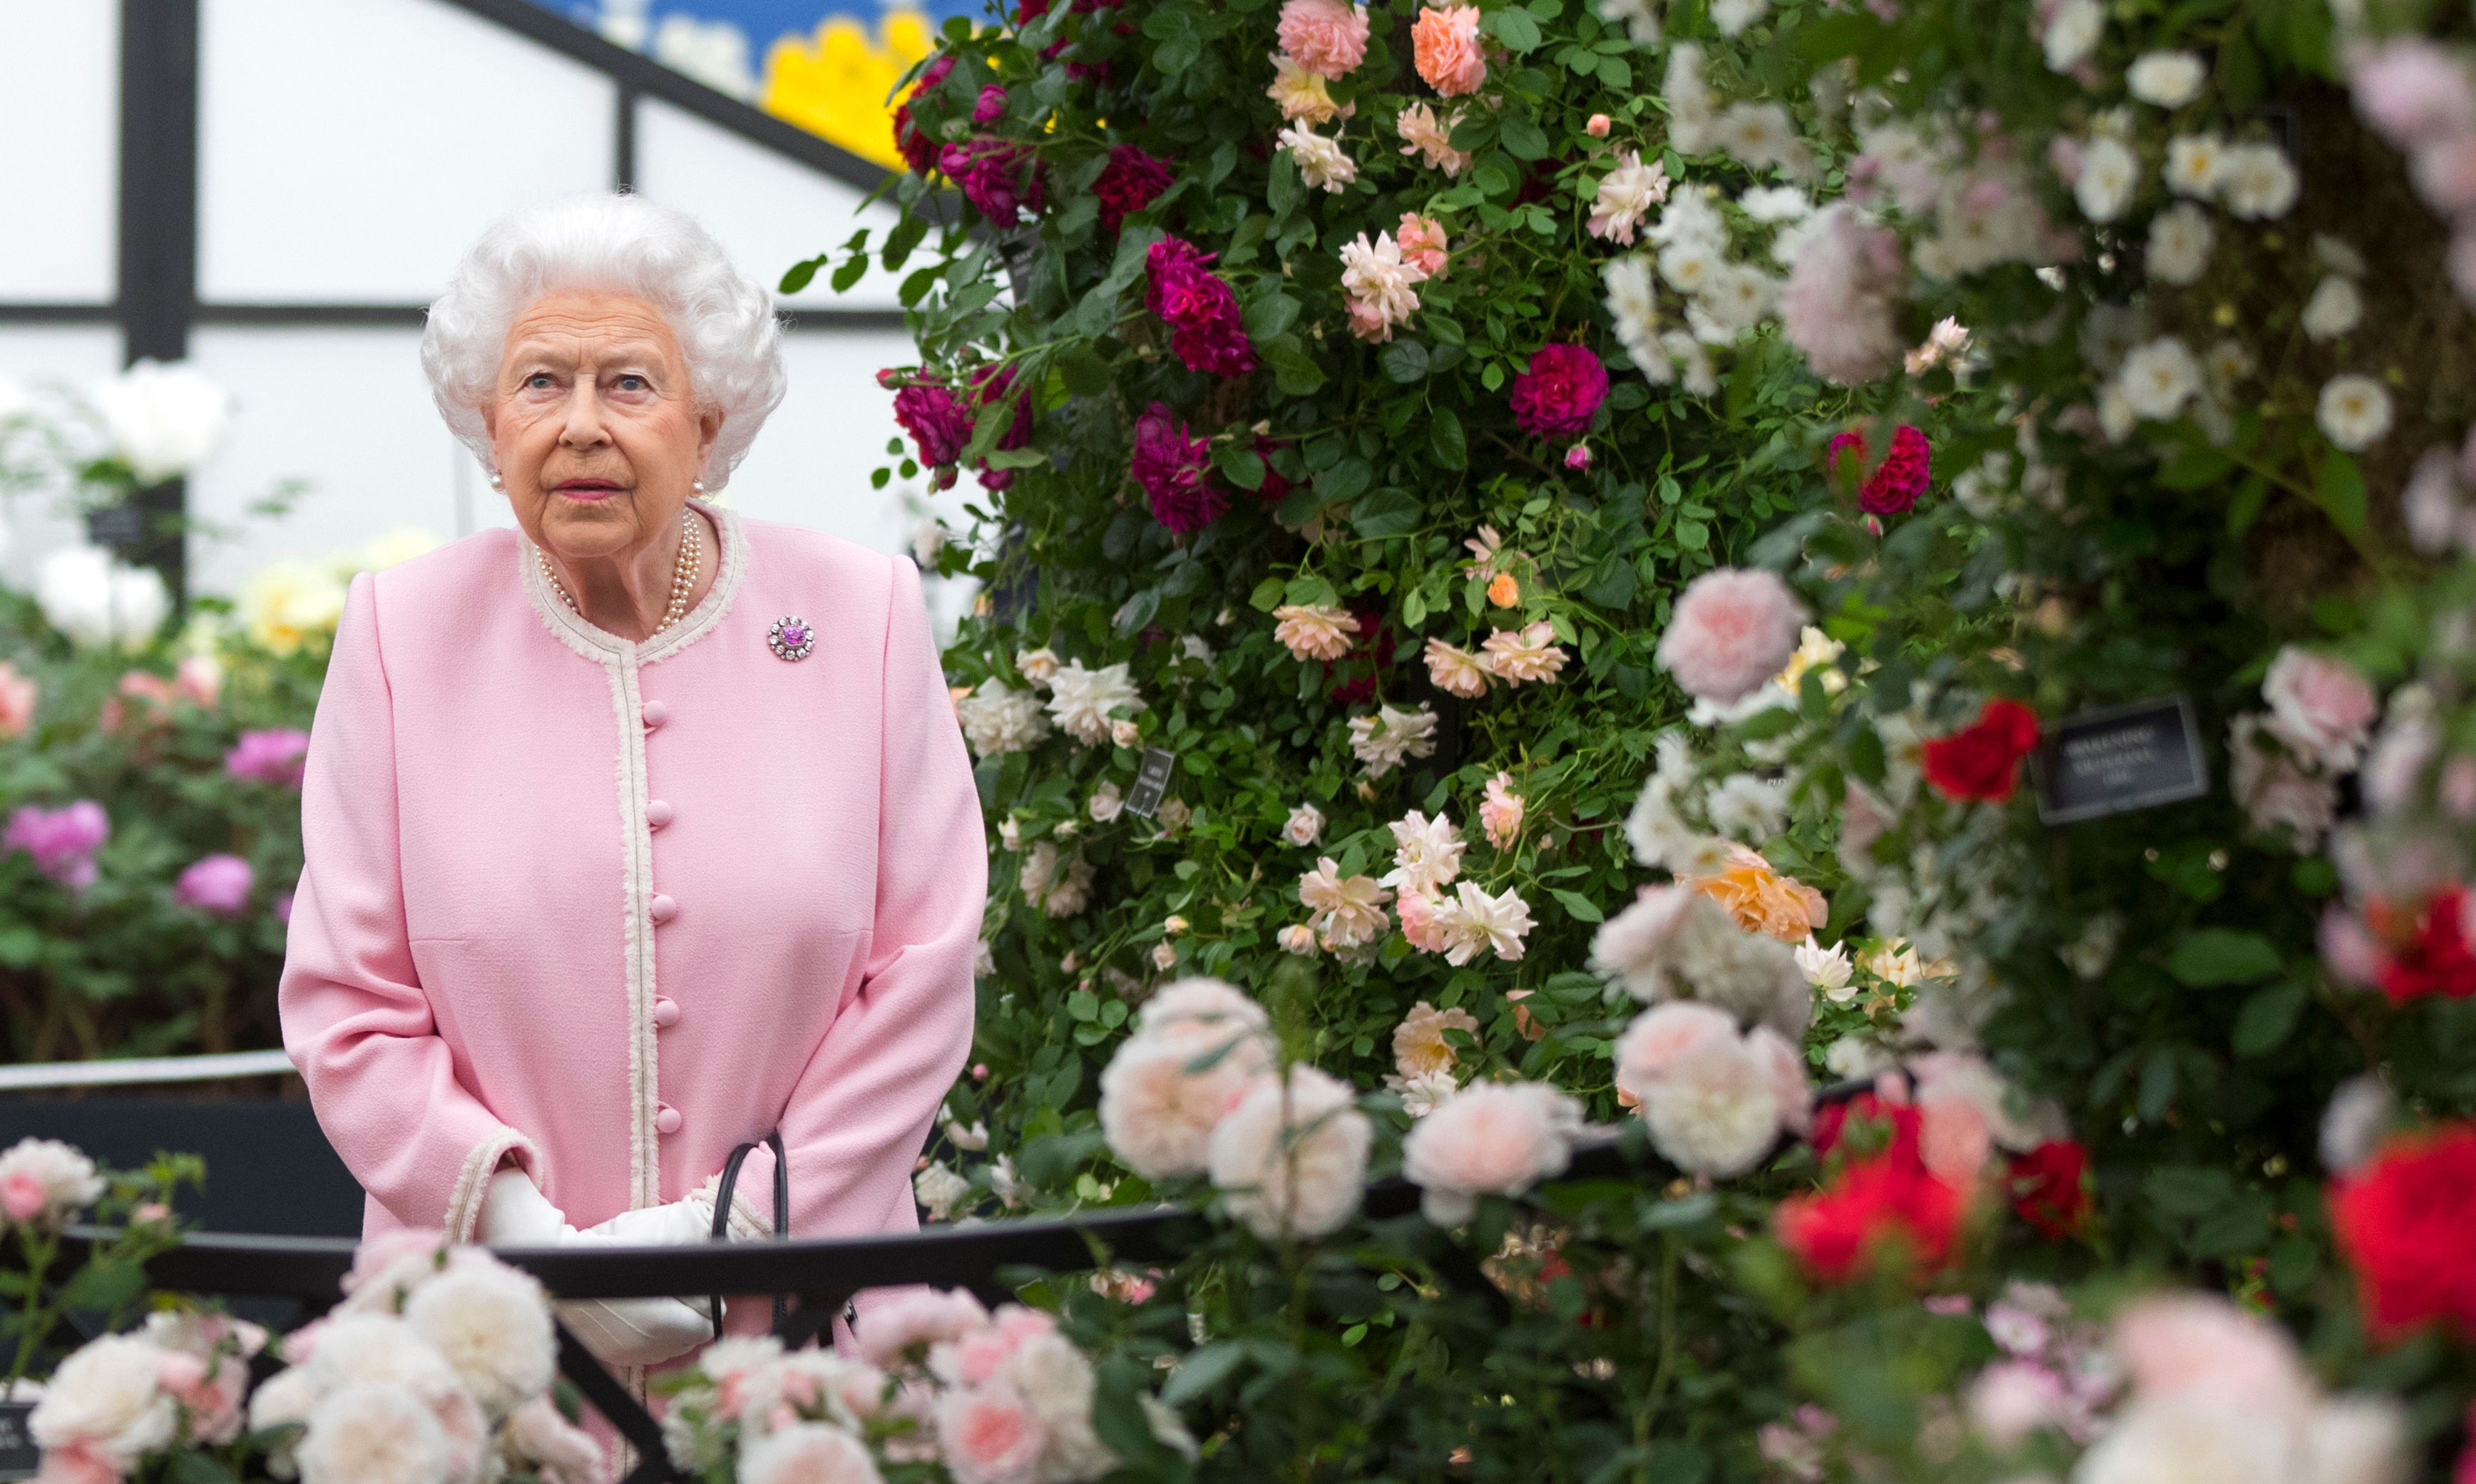 Chelsea Flower Show opens online for the first time